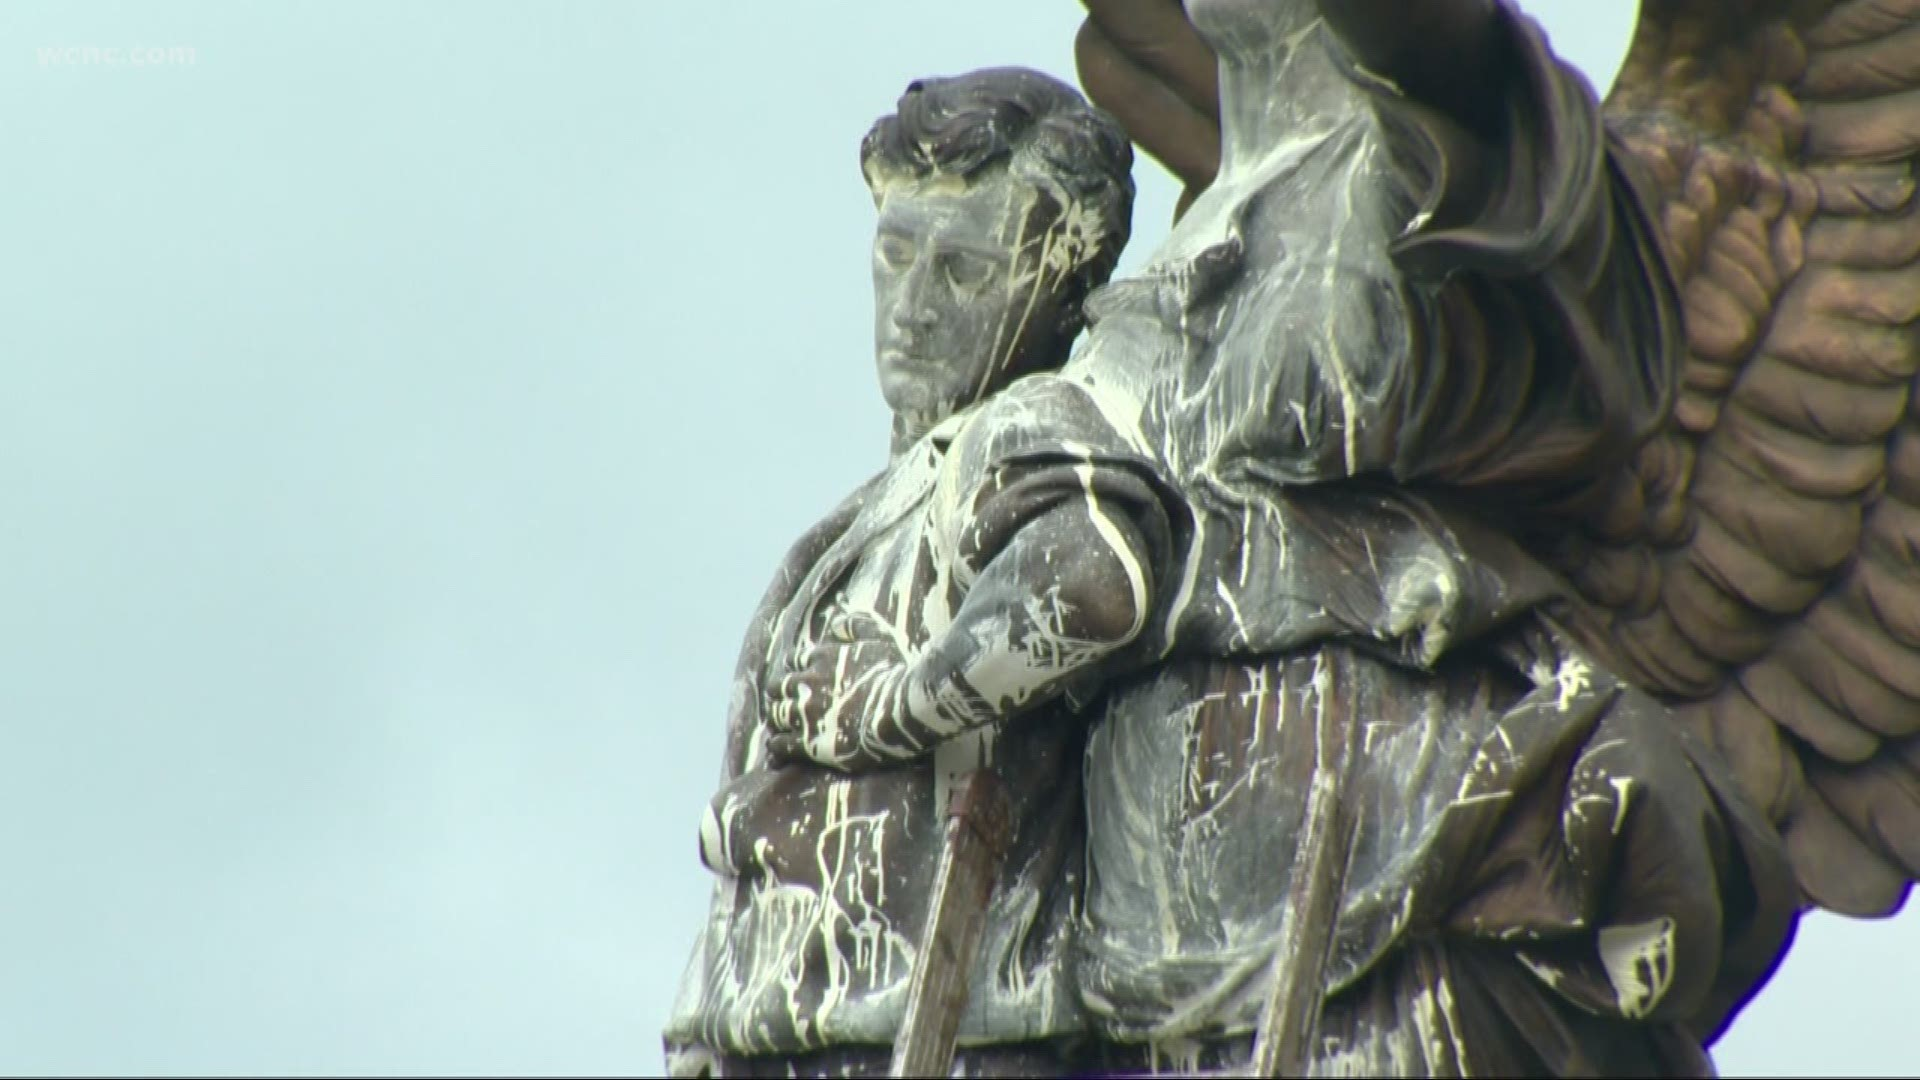 Newly Erected Statue Causes Controversy and Social Media